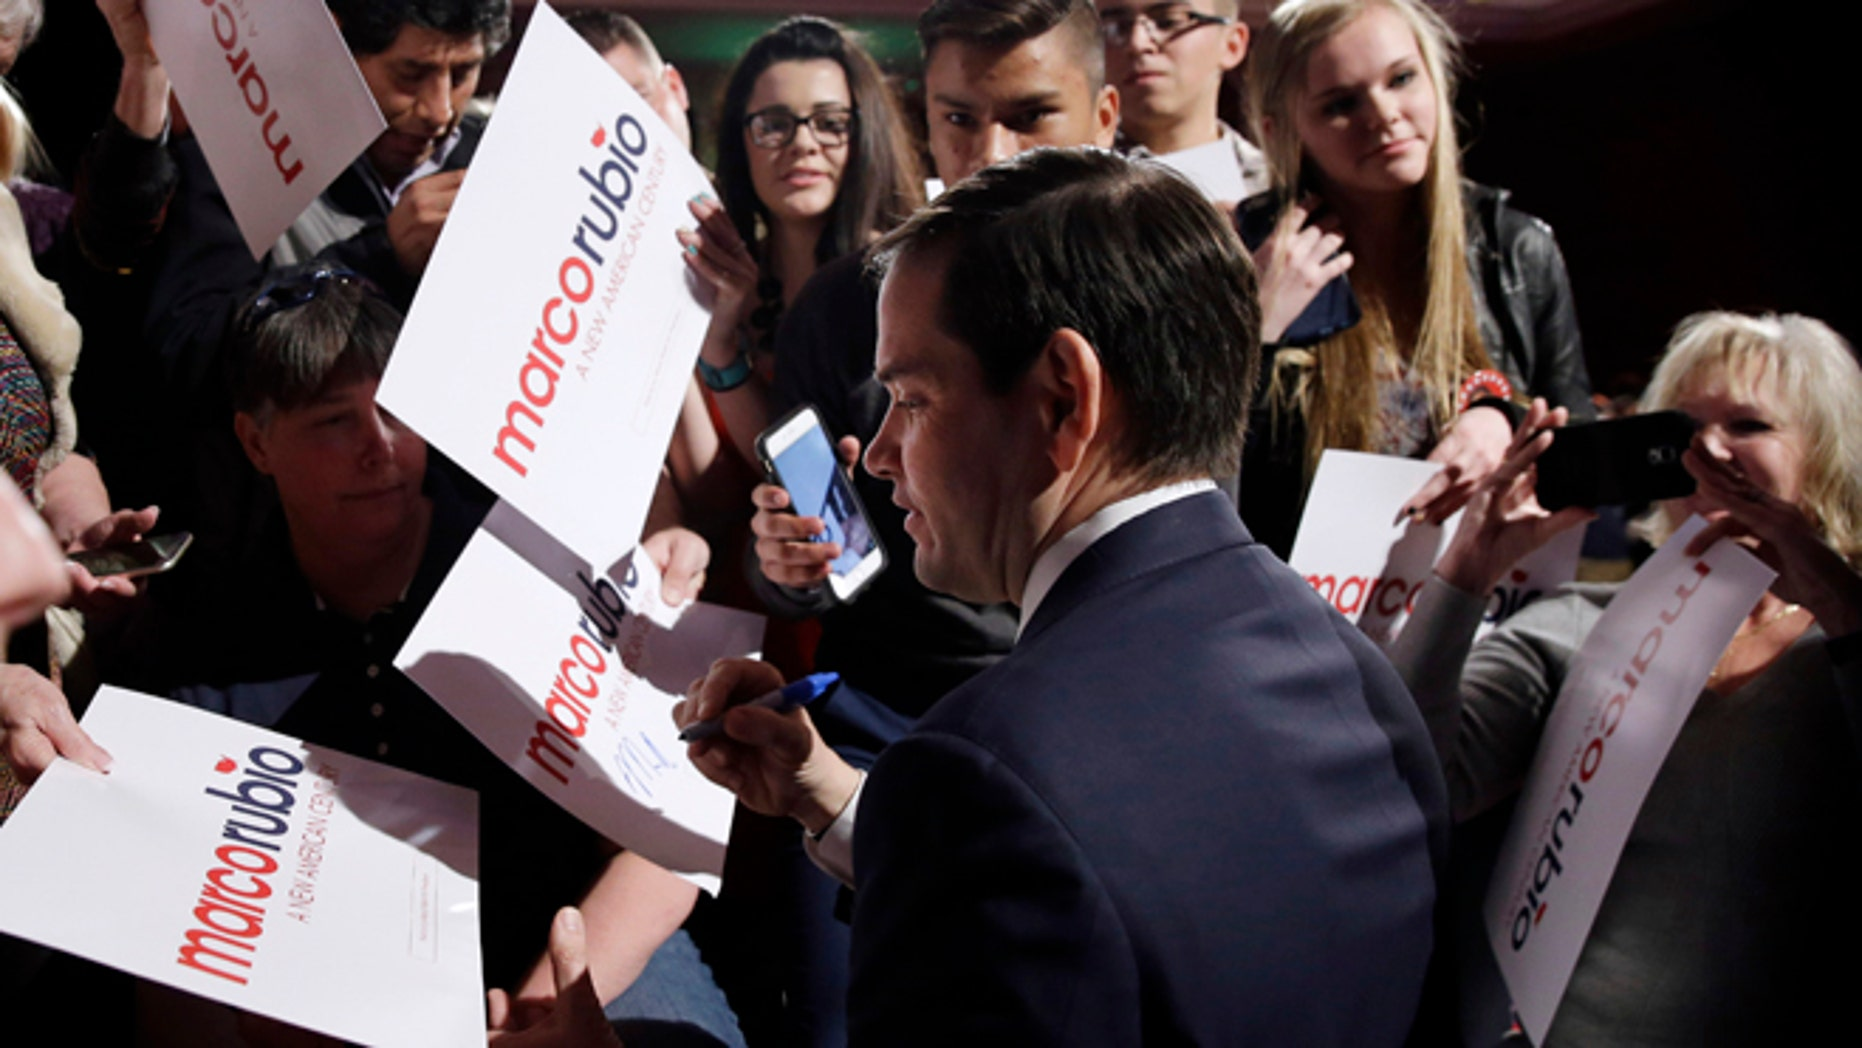 Republican presidential candidate Sen. Marco Rubio, R-Fla, center, signs autographs after speaking at a rally Monday, Feb. 22, 2016, in Reno, Nev. (AP Photo/Marcio Jose Sanchez)